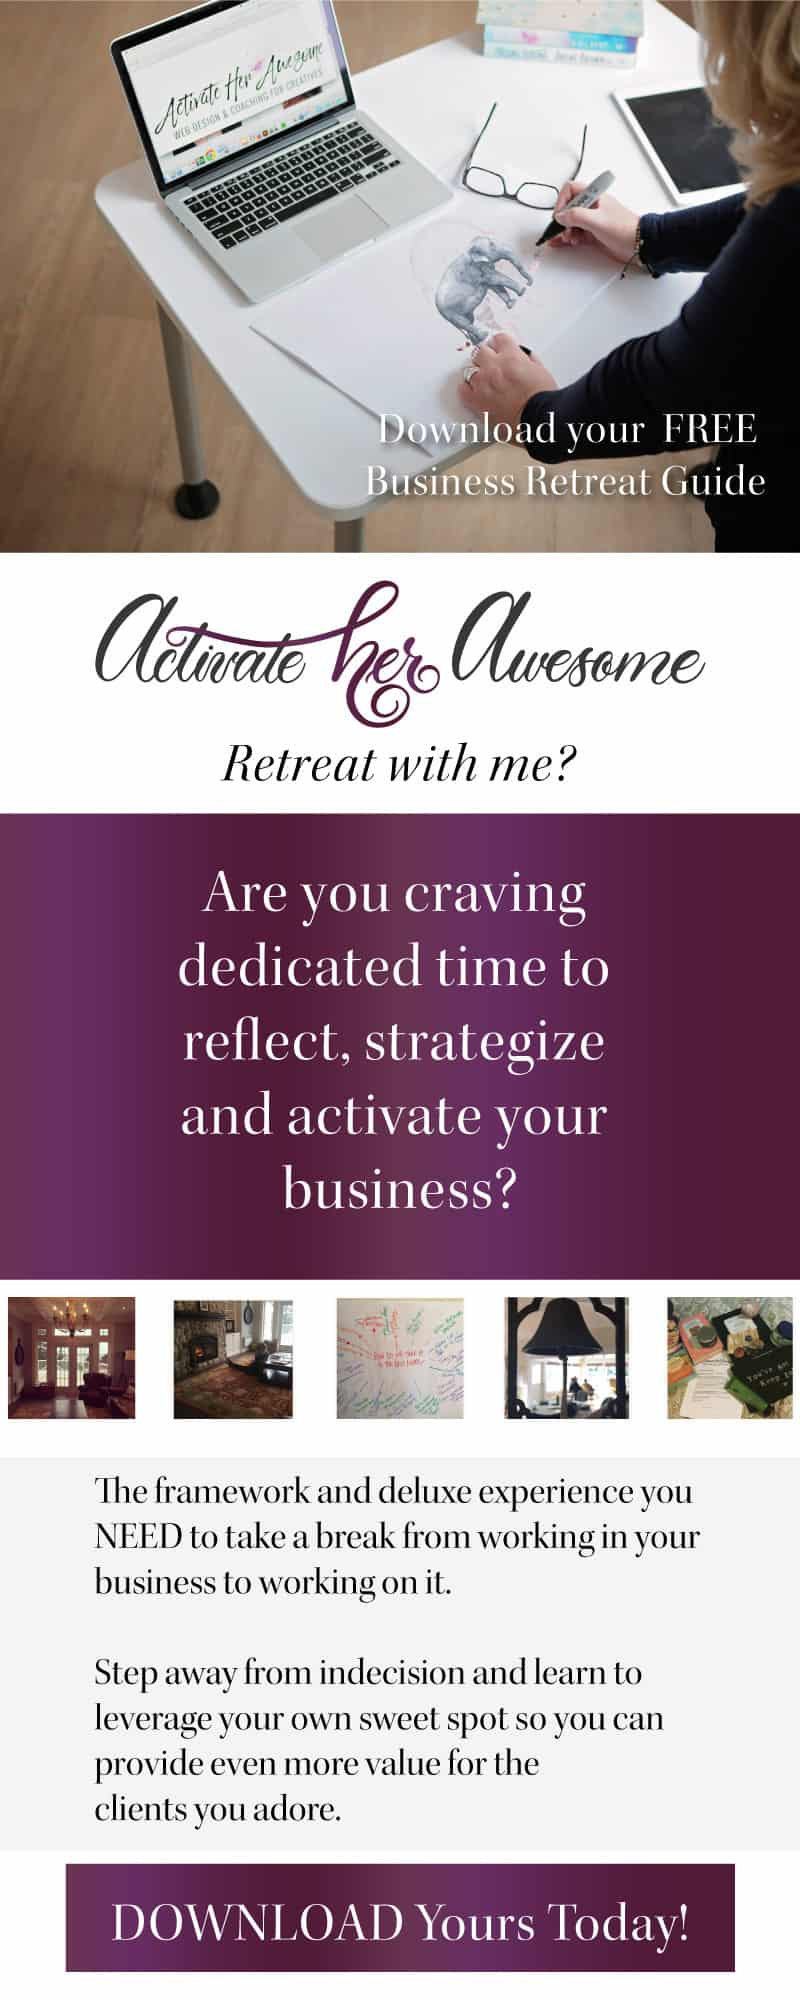 Are you ready to take yourself on a business retreat? Get your FREE framework with Krista Smith's Mini Business Retreat Guide at ActivateHerAwesome.com